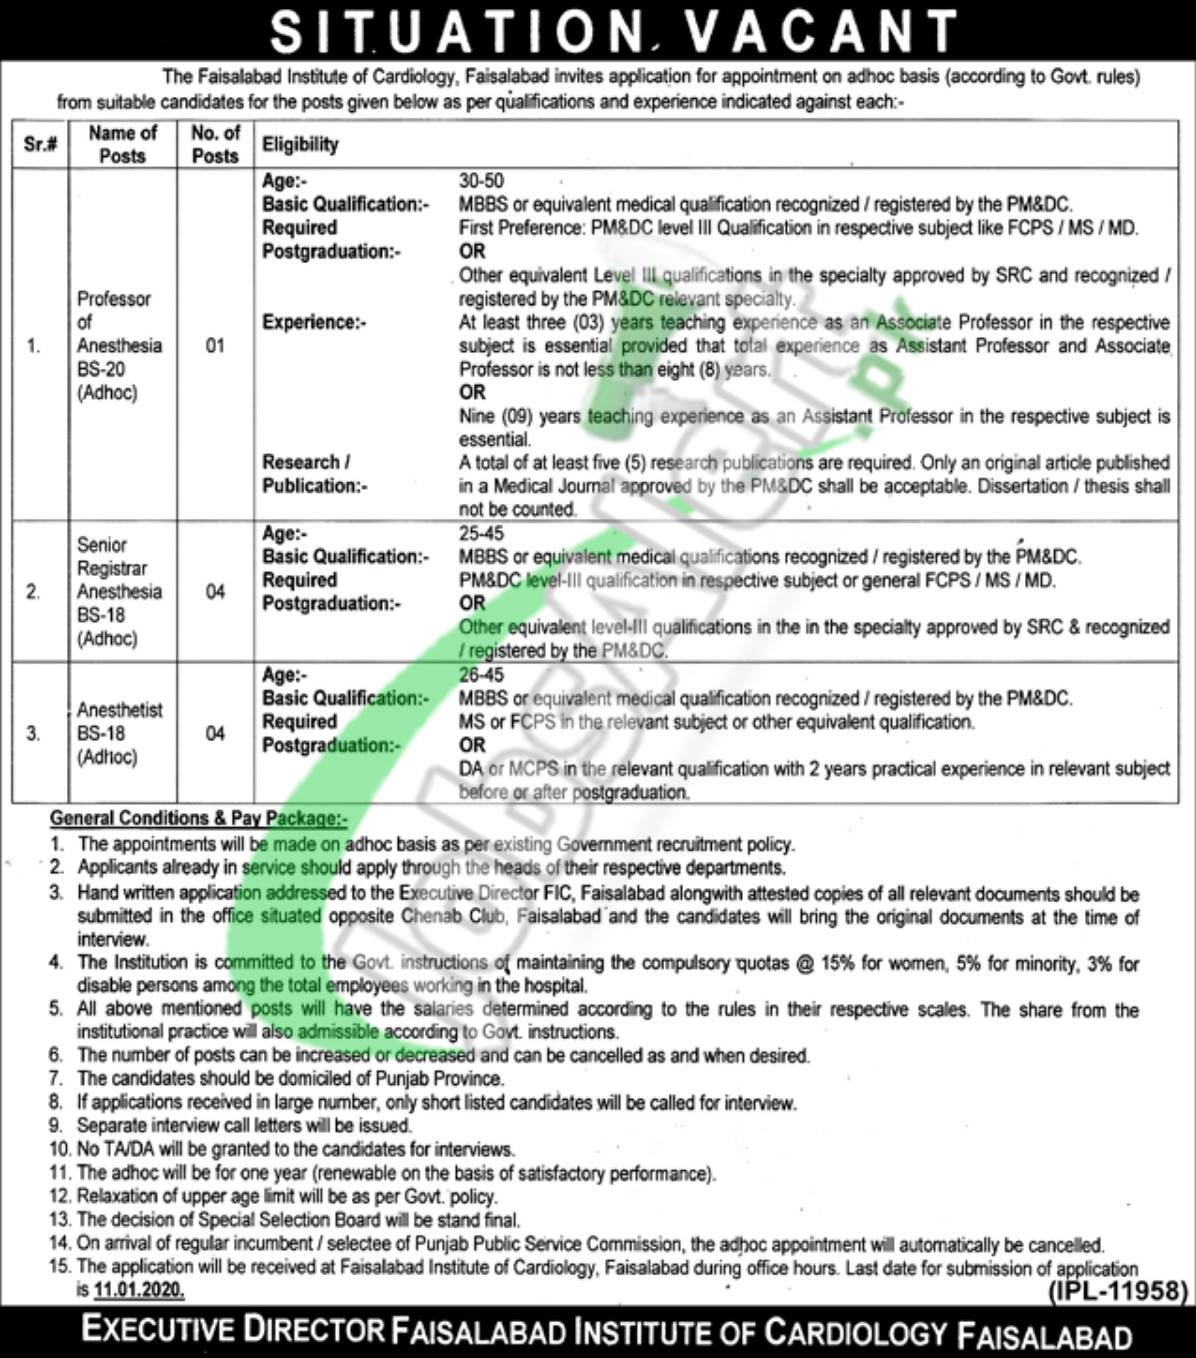 Situation Vacant Faisalabad Institute of Cardiology